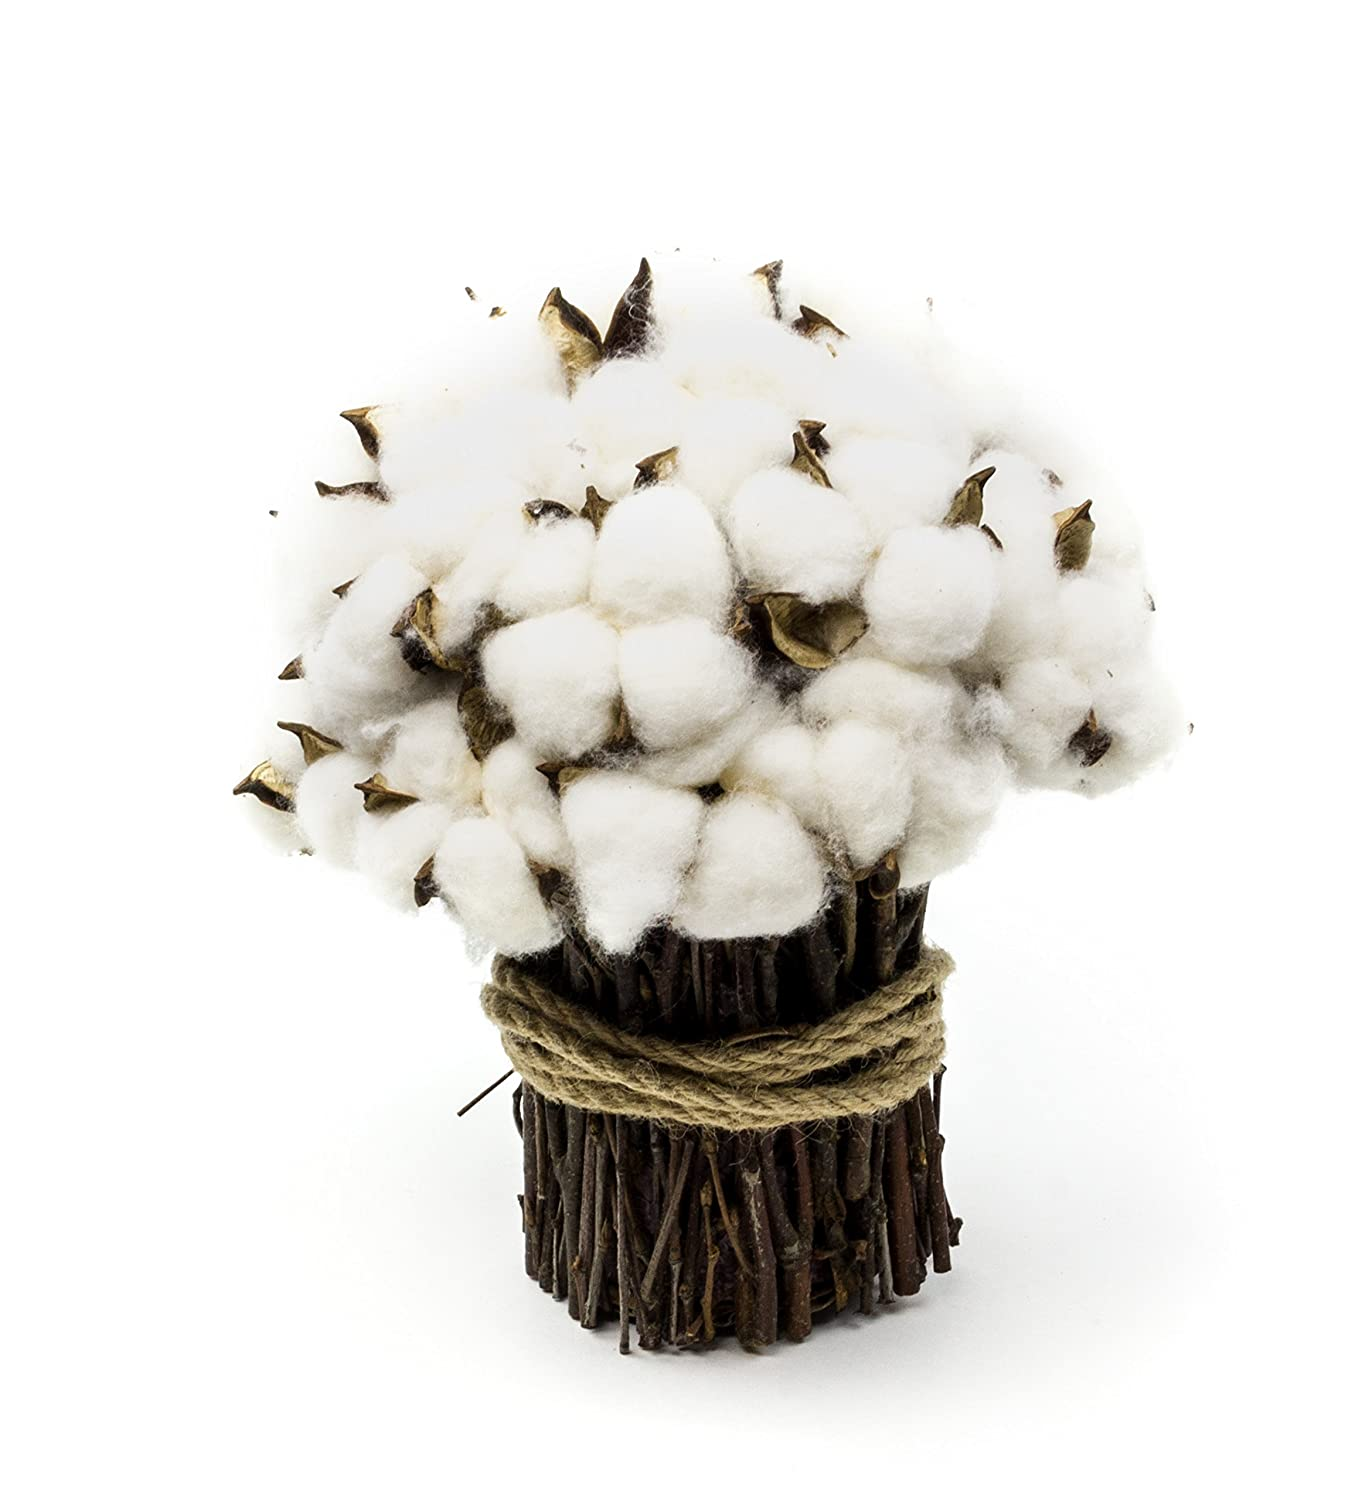 Amazon.com: Rustic Cotton Boll Bouquet Wedding Centerpiece: Home ...